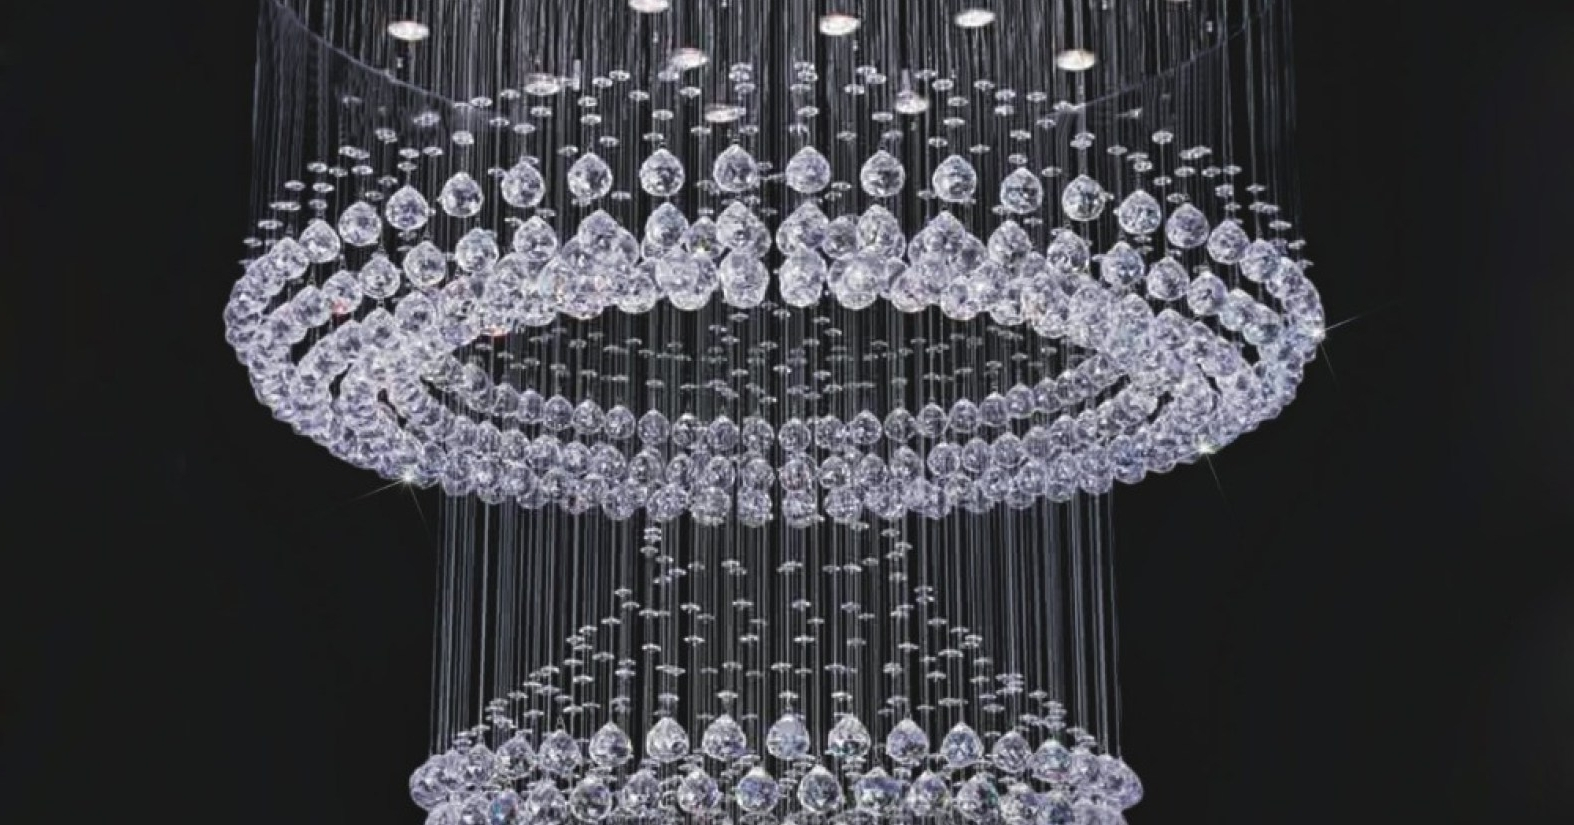 Faux Crystal Chandeliers Within 2019 Faux Crystal Chandeliers Fauxal Chandelier Creative Lady Of The (View 10 of 20)